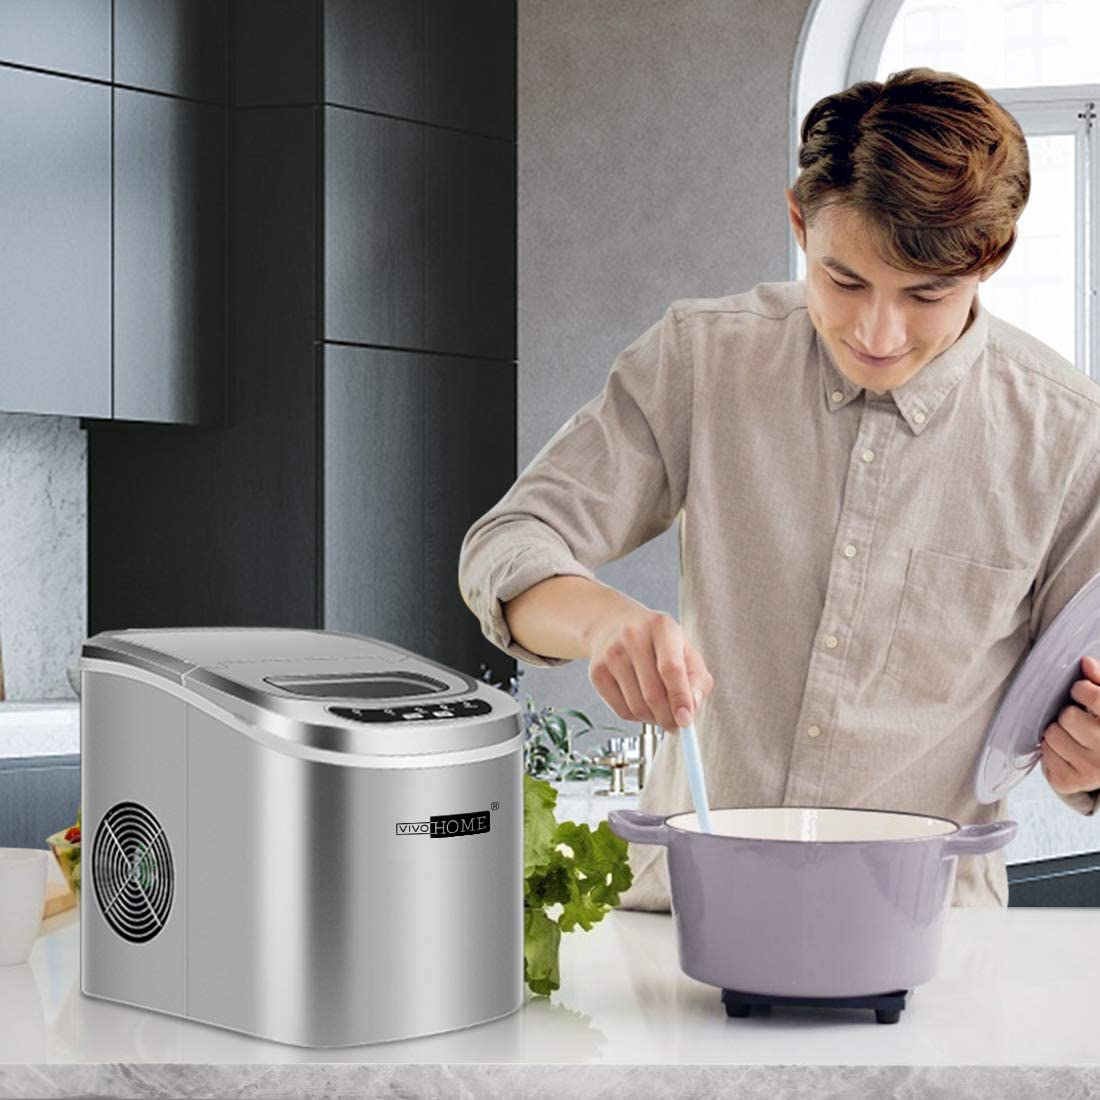 VIVOHOME Electric Portable Compact Countertop Automatic Ice Cube Maker Machine 26lbs/day Silver